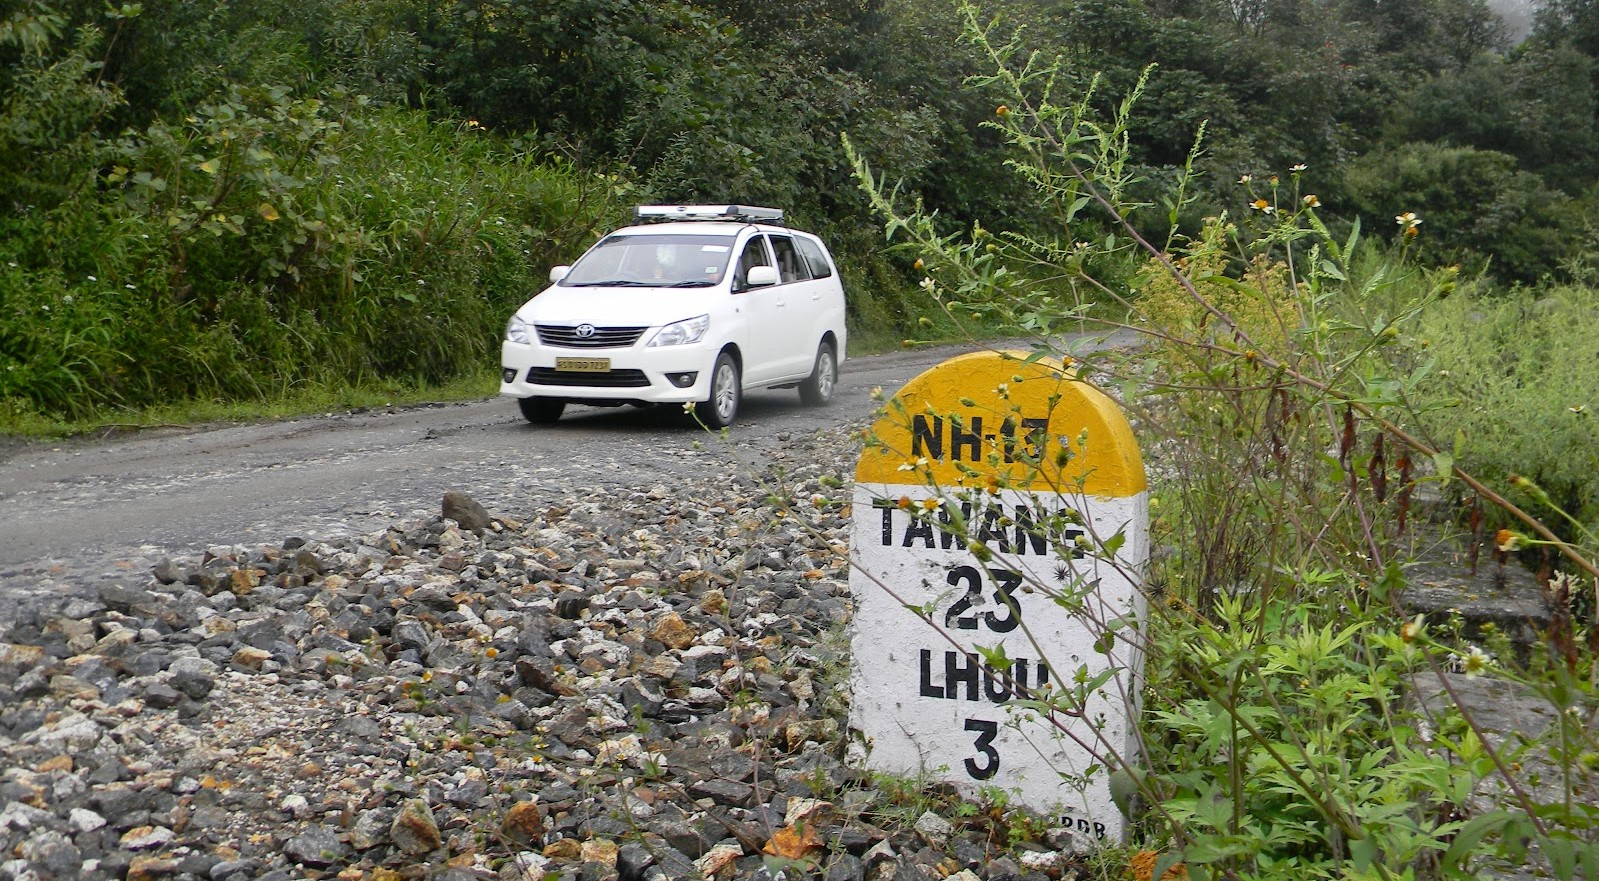 bhalupkong-to-tawang-road-trip-route